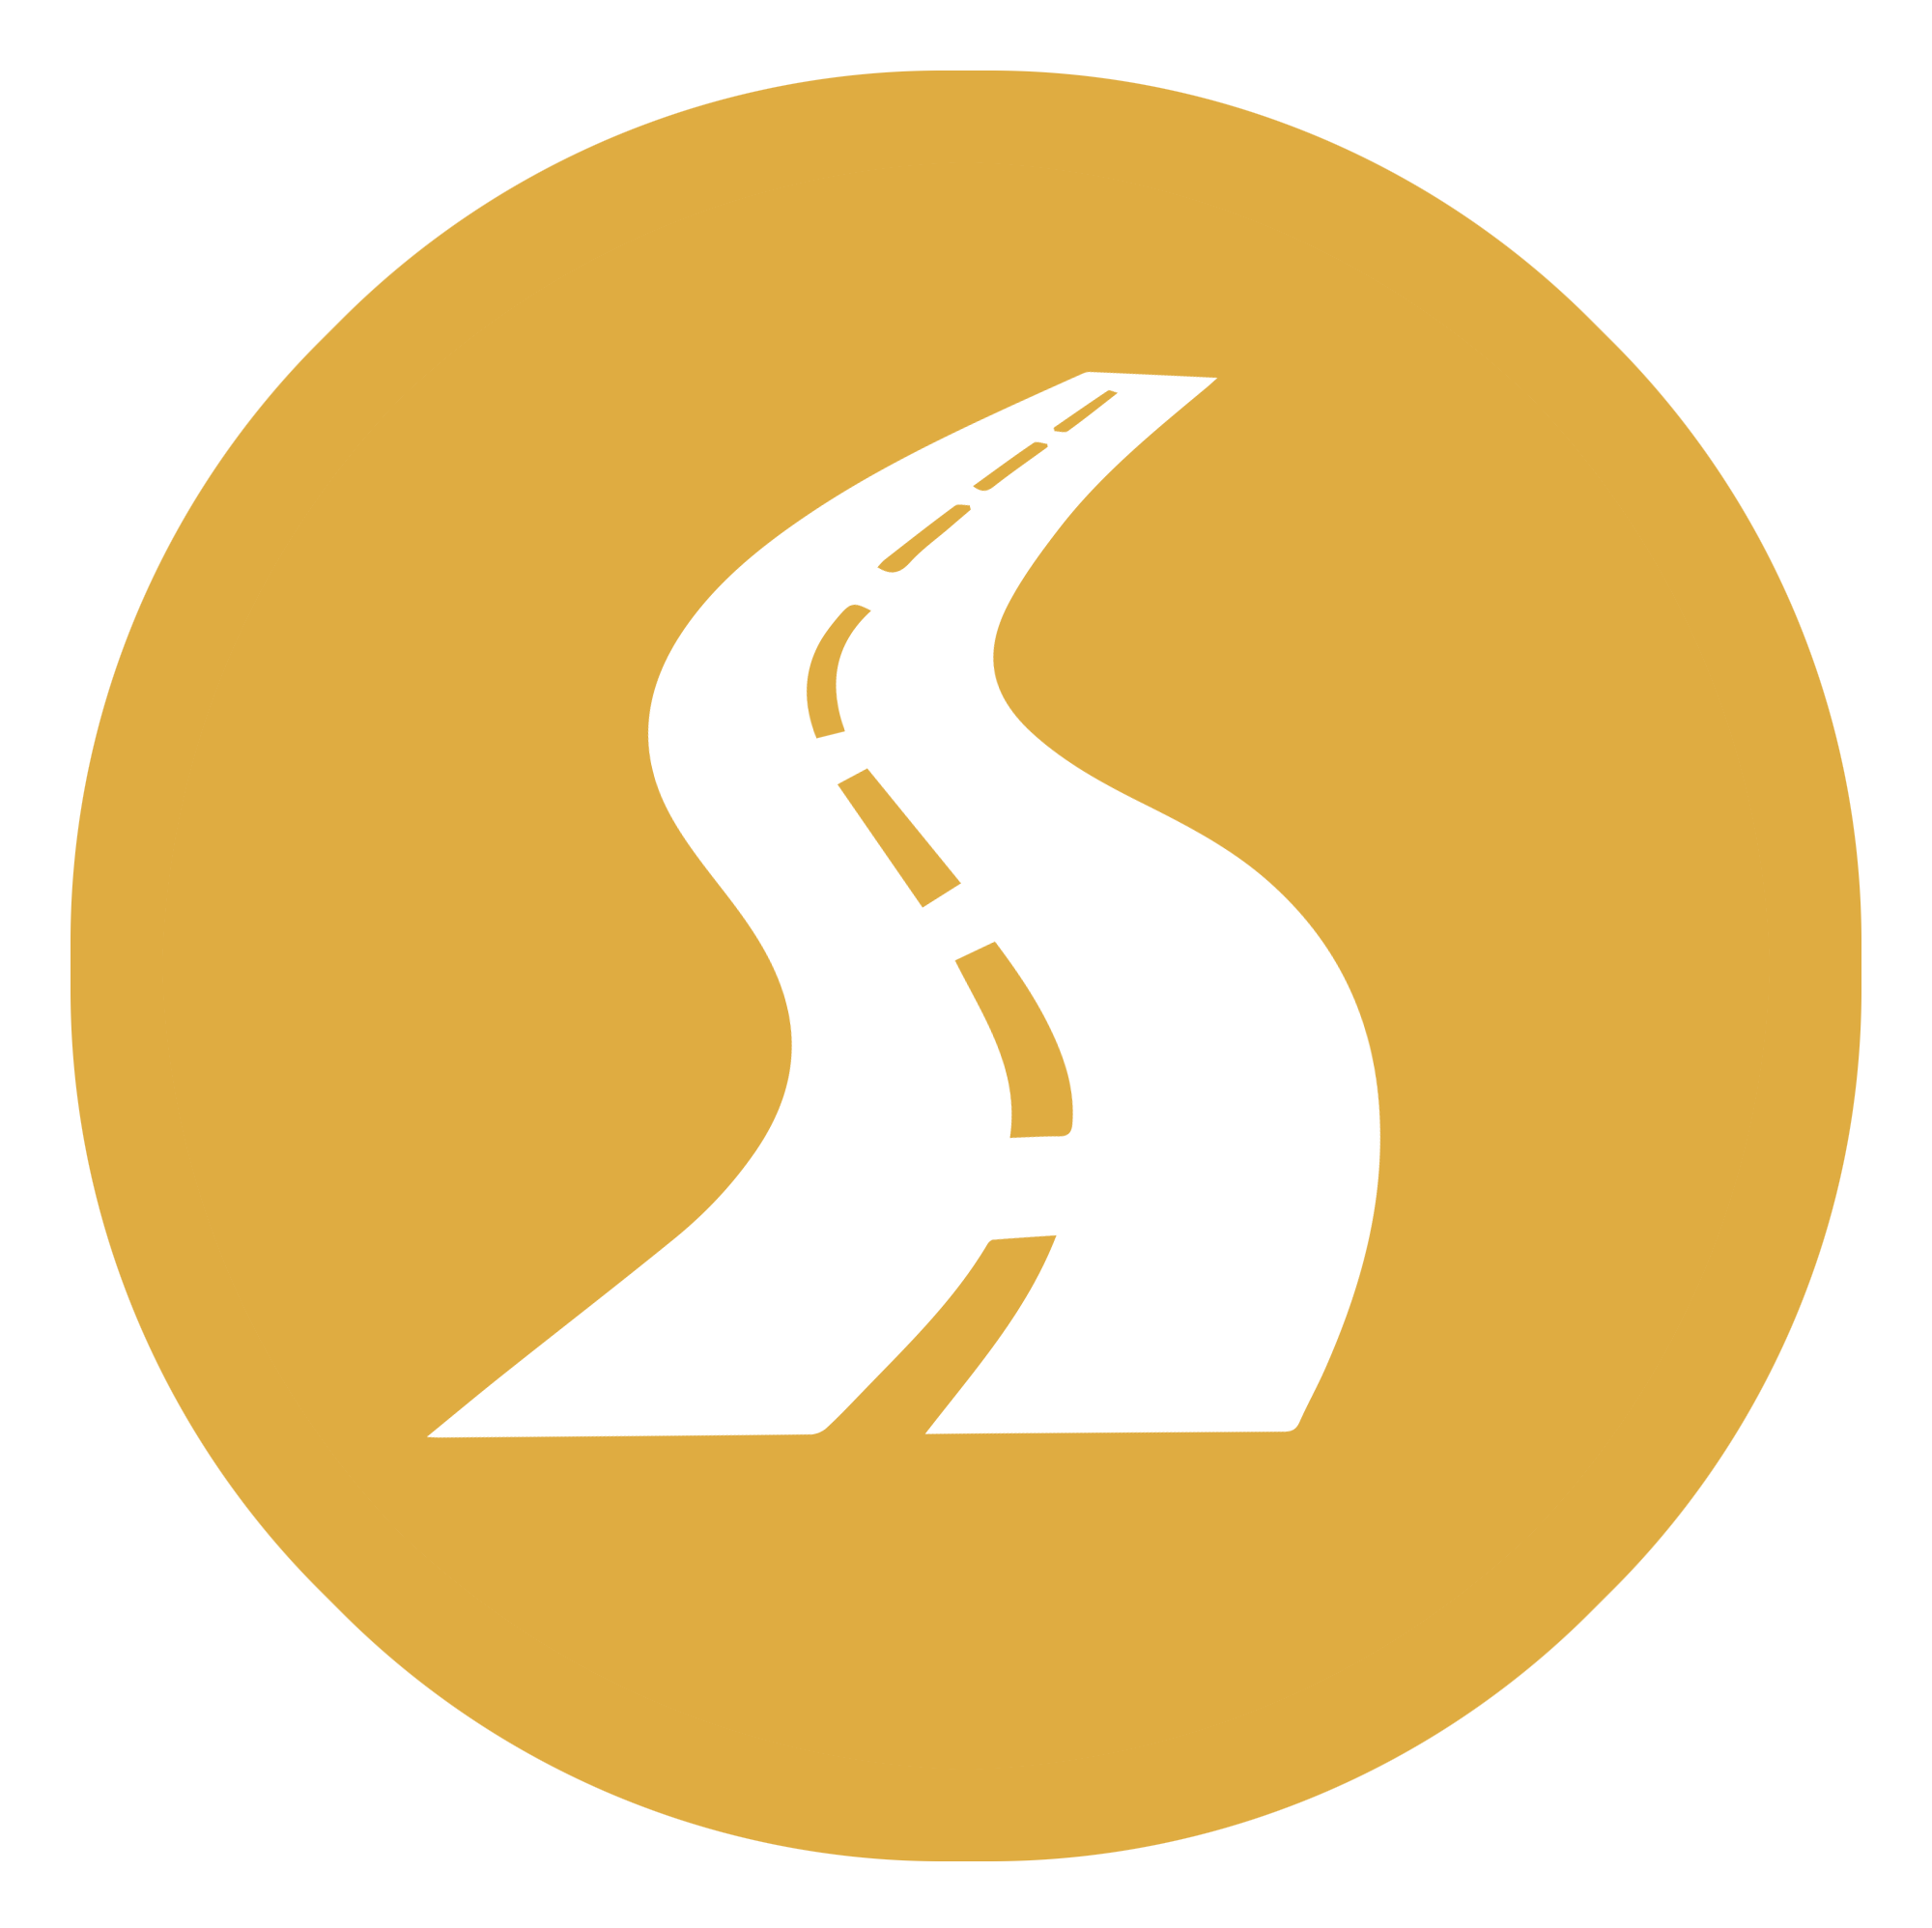 SUB_ICON-ROADS_2.png